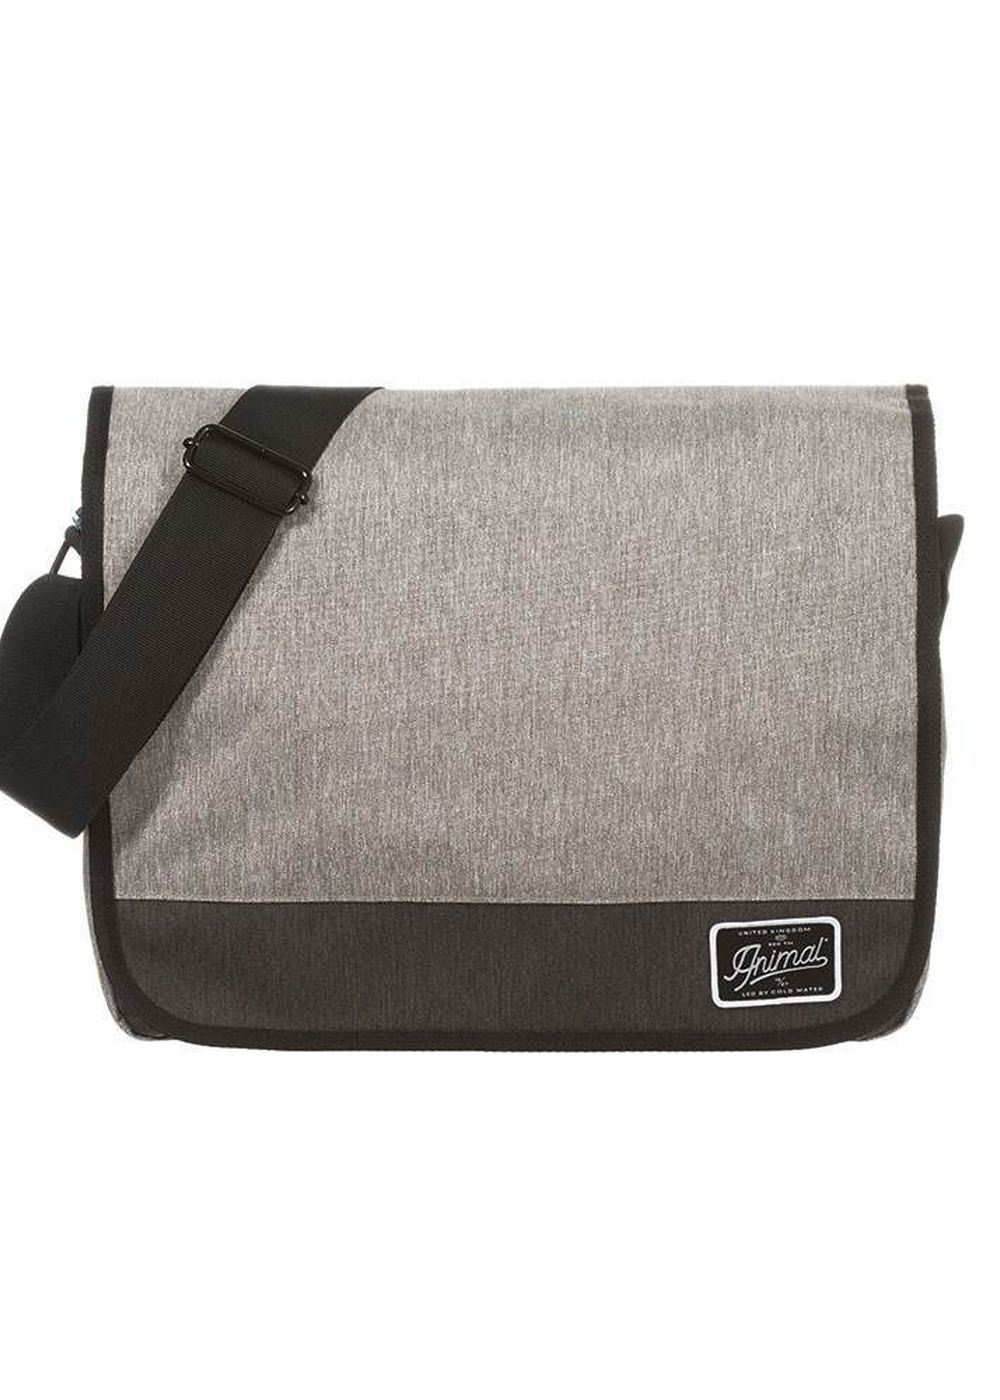 animal verge satchel bag steel grey